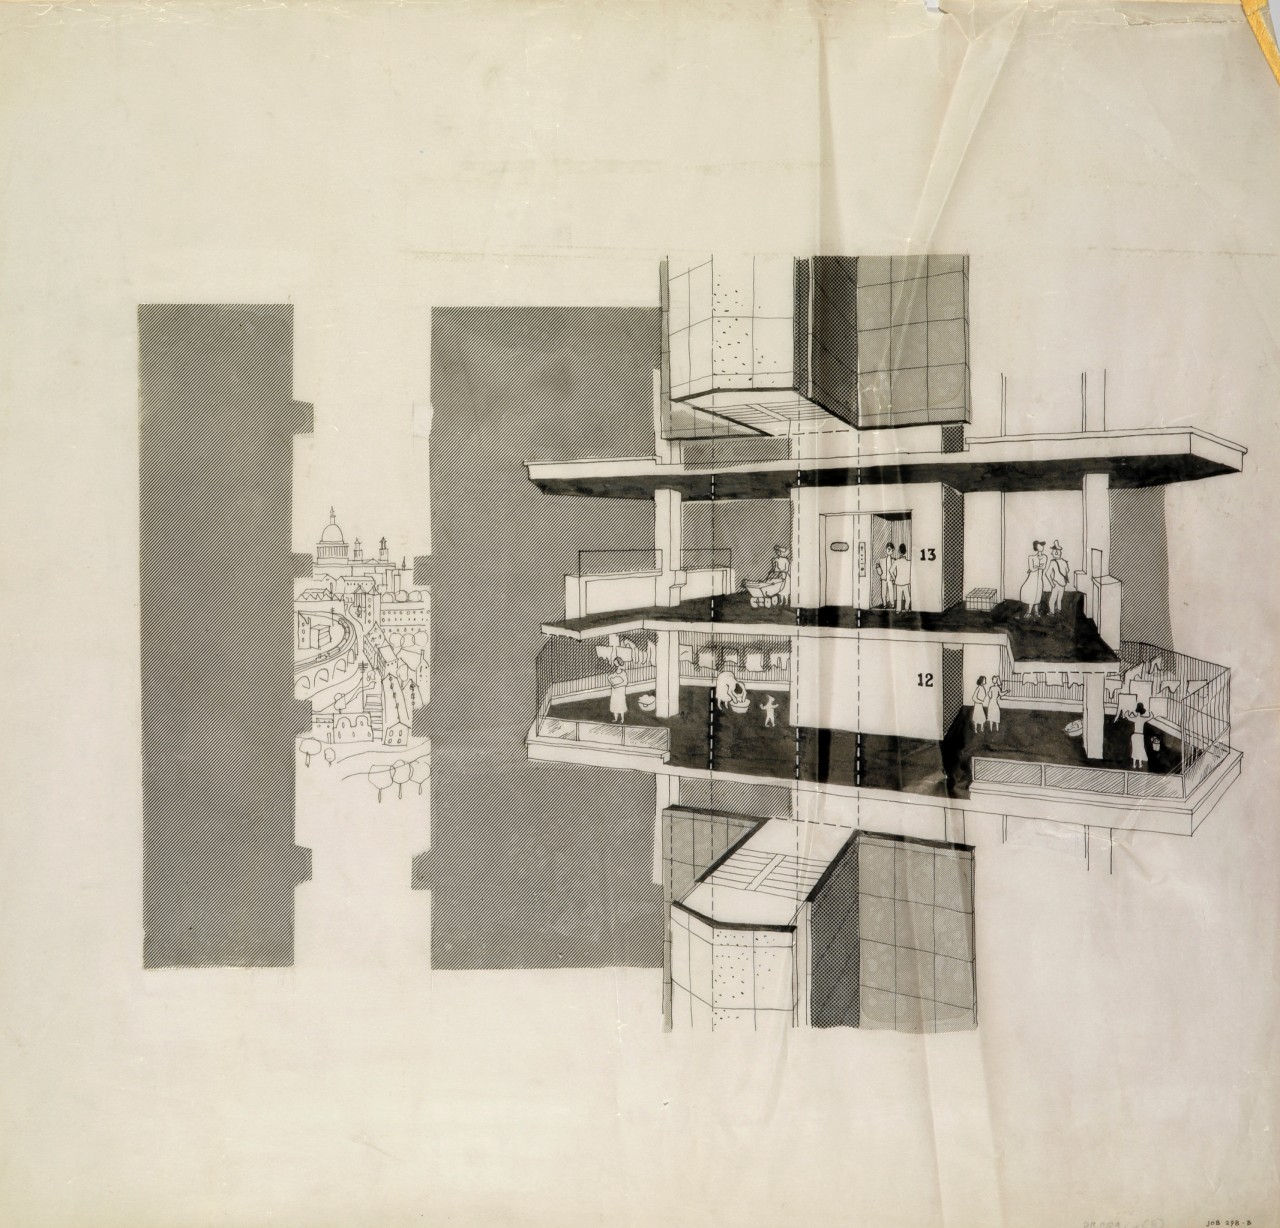 Designs for the Claredale Street estate, Bethnal Green, London: section showing residents on the 12th and 13th floor balcony areas of Block A1 (Keeling House)